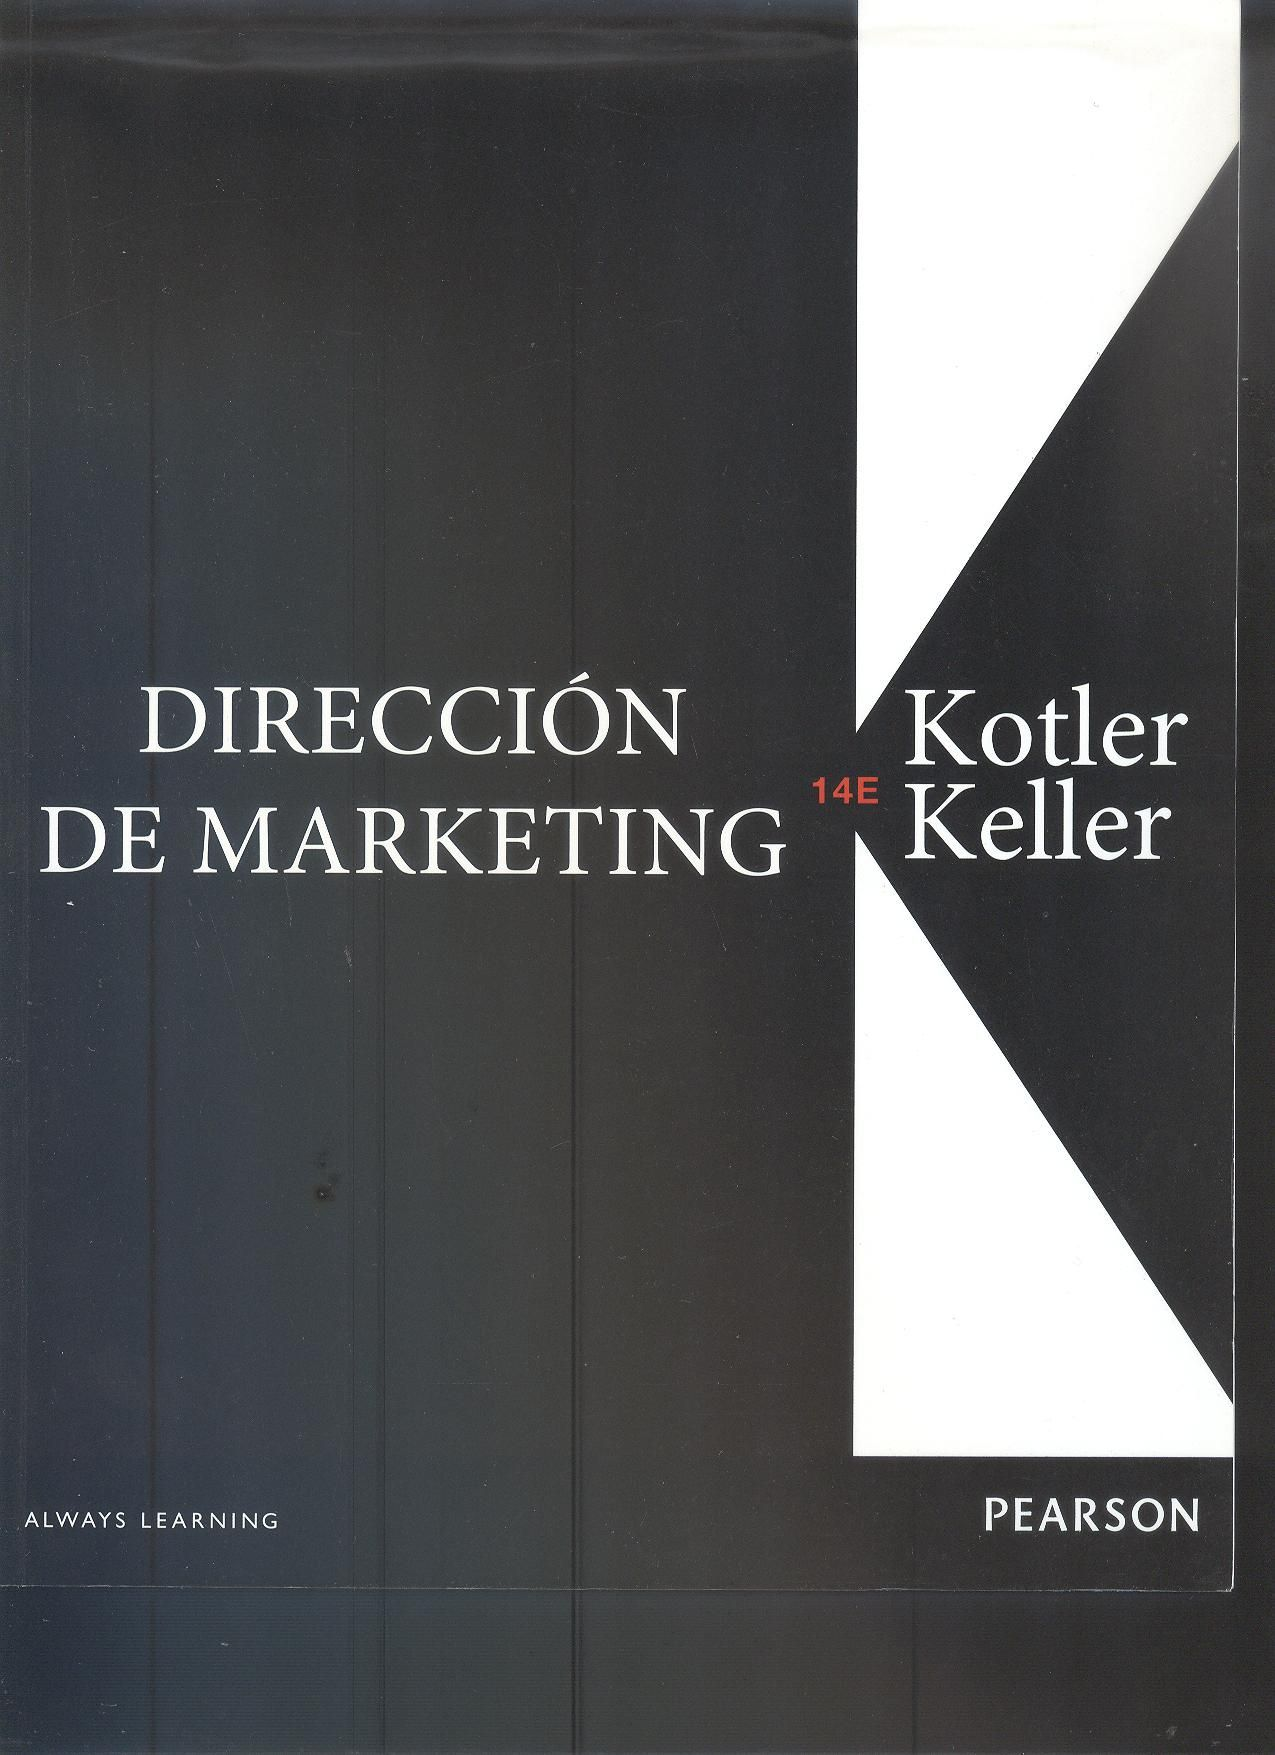 Fundamentos De Administracion De Empresas Libro Best 25 43 Direccion De Marketing Kotler Ideas On Pinterest